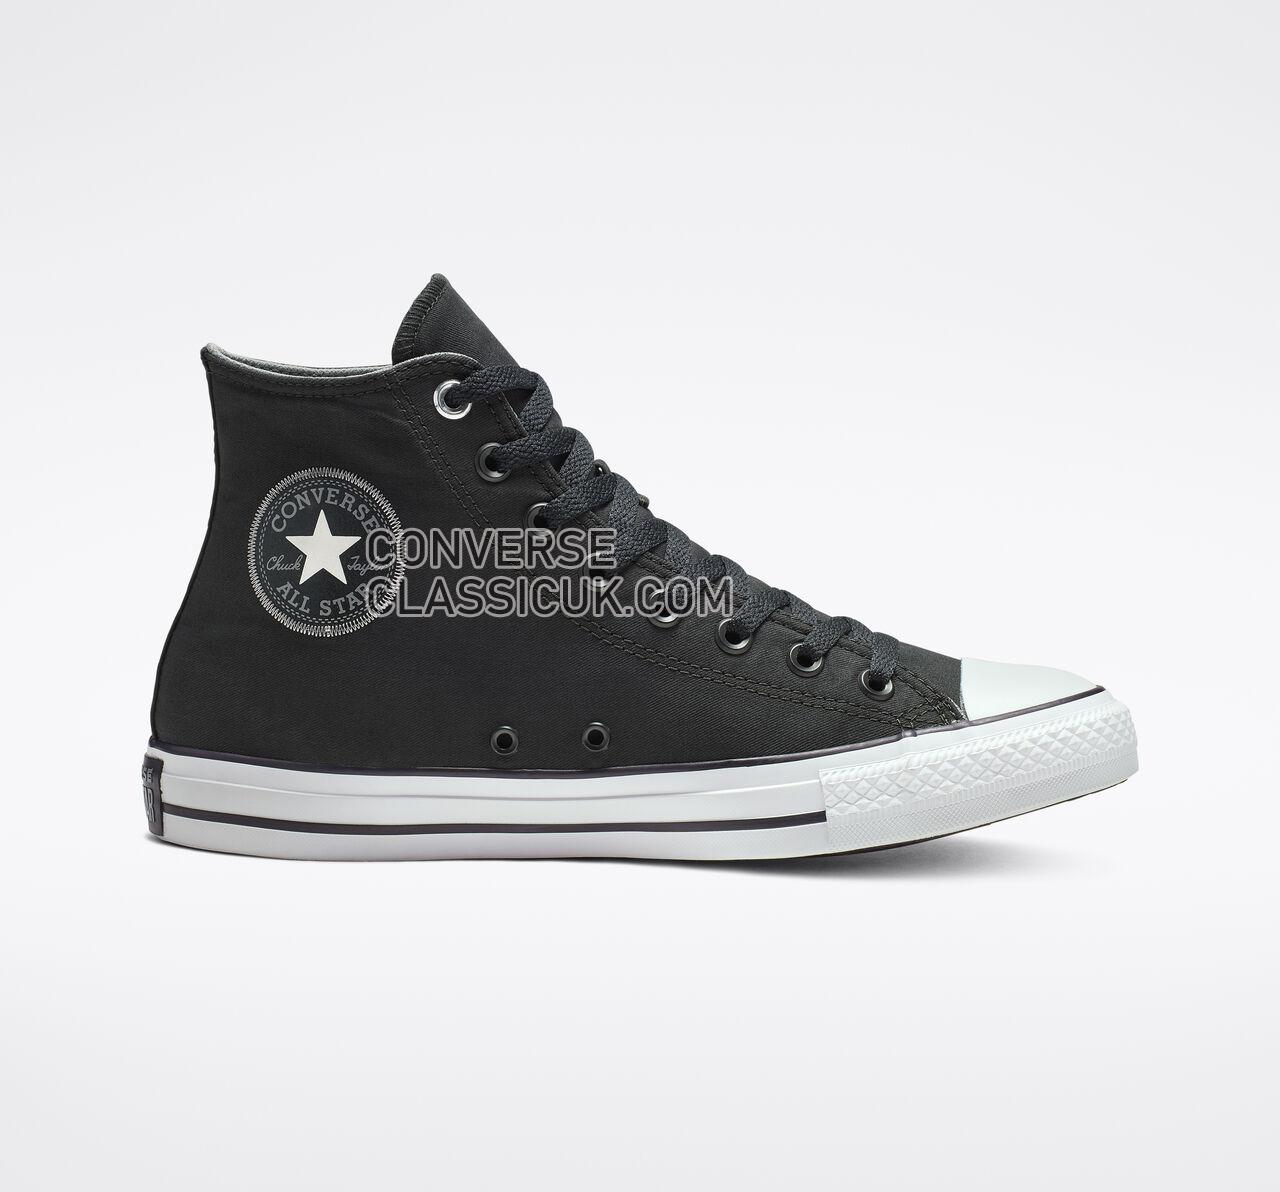 Converse Chuck Taylor All Star Space Explorer High Top Mens Womens Unisex 164880F Black/Black/White Shoes